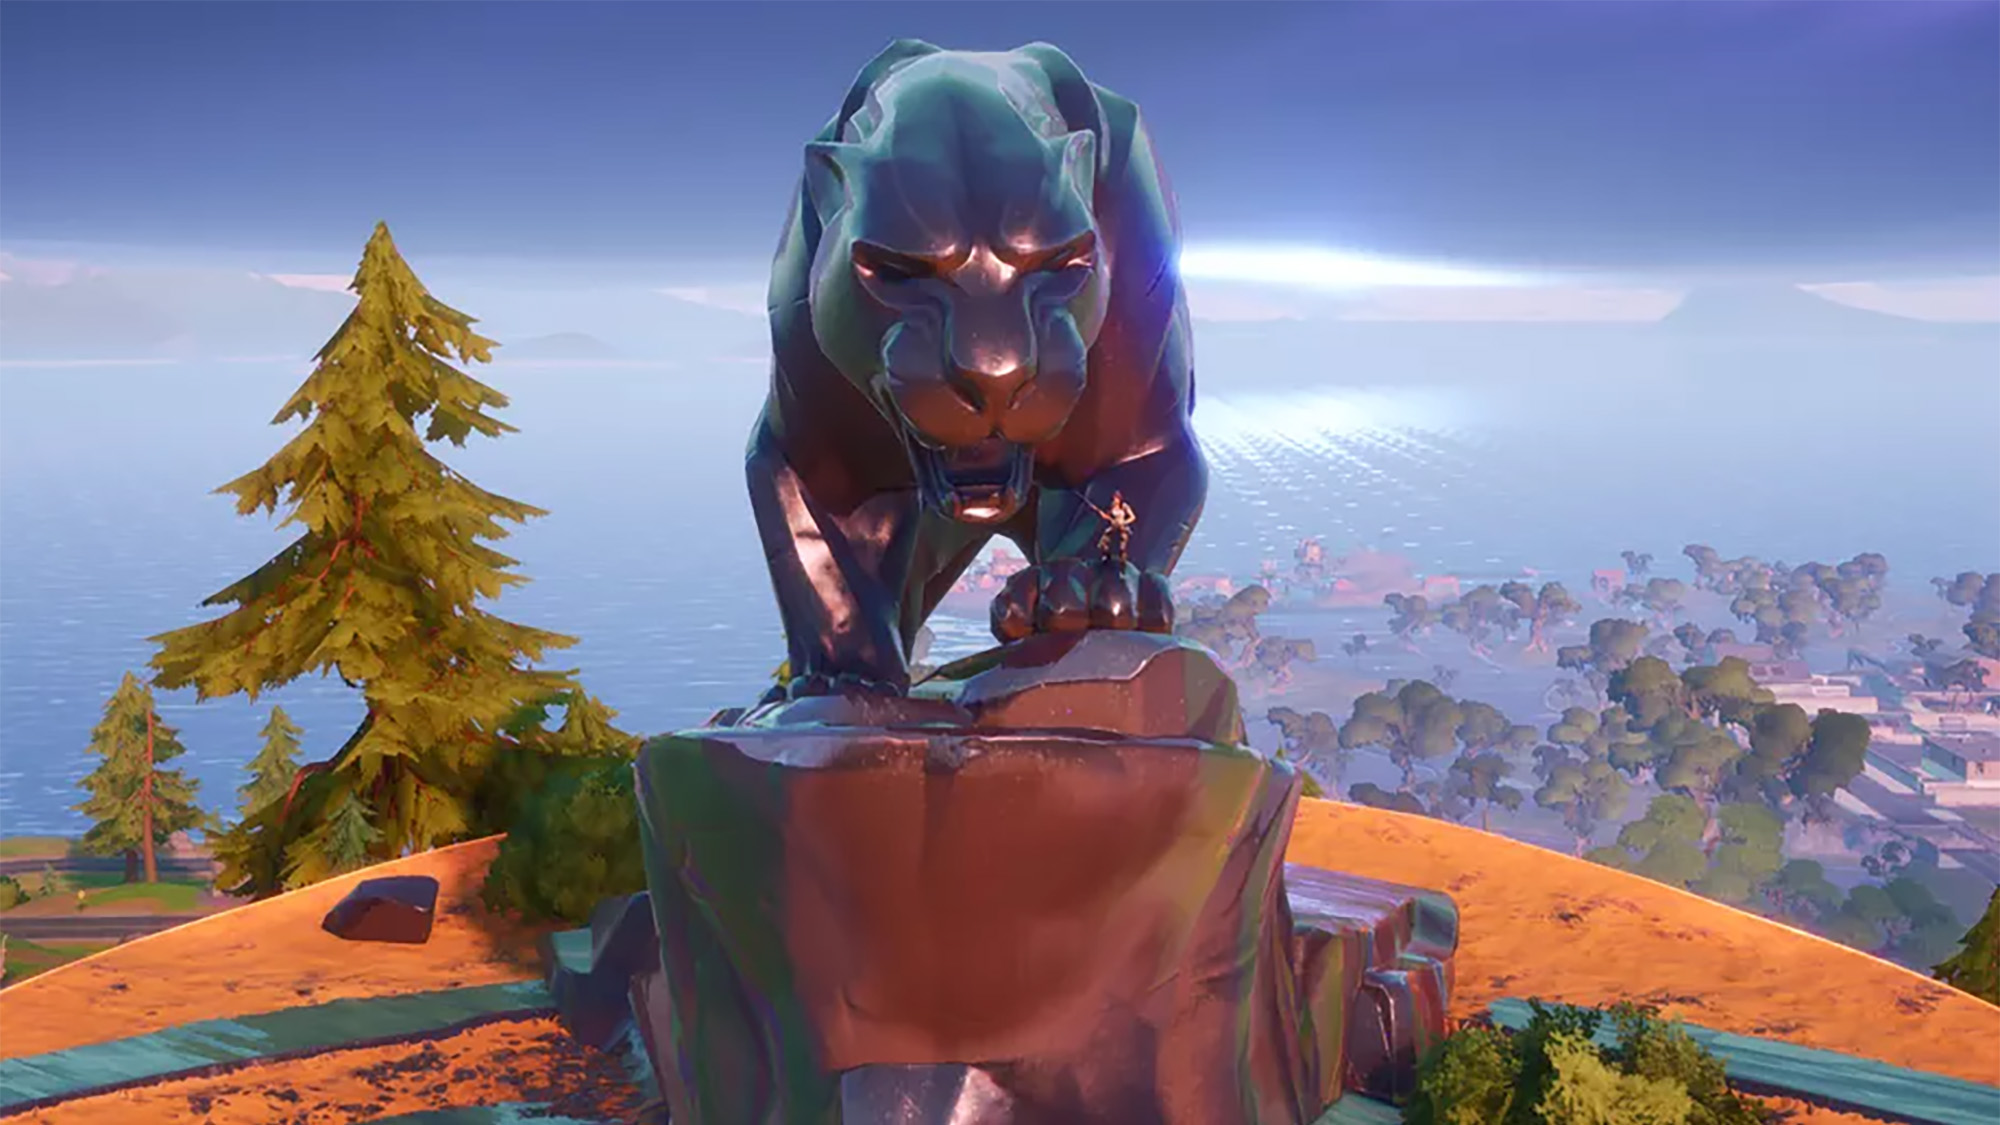 Black Panther Statue Fortnite